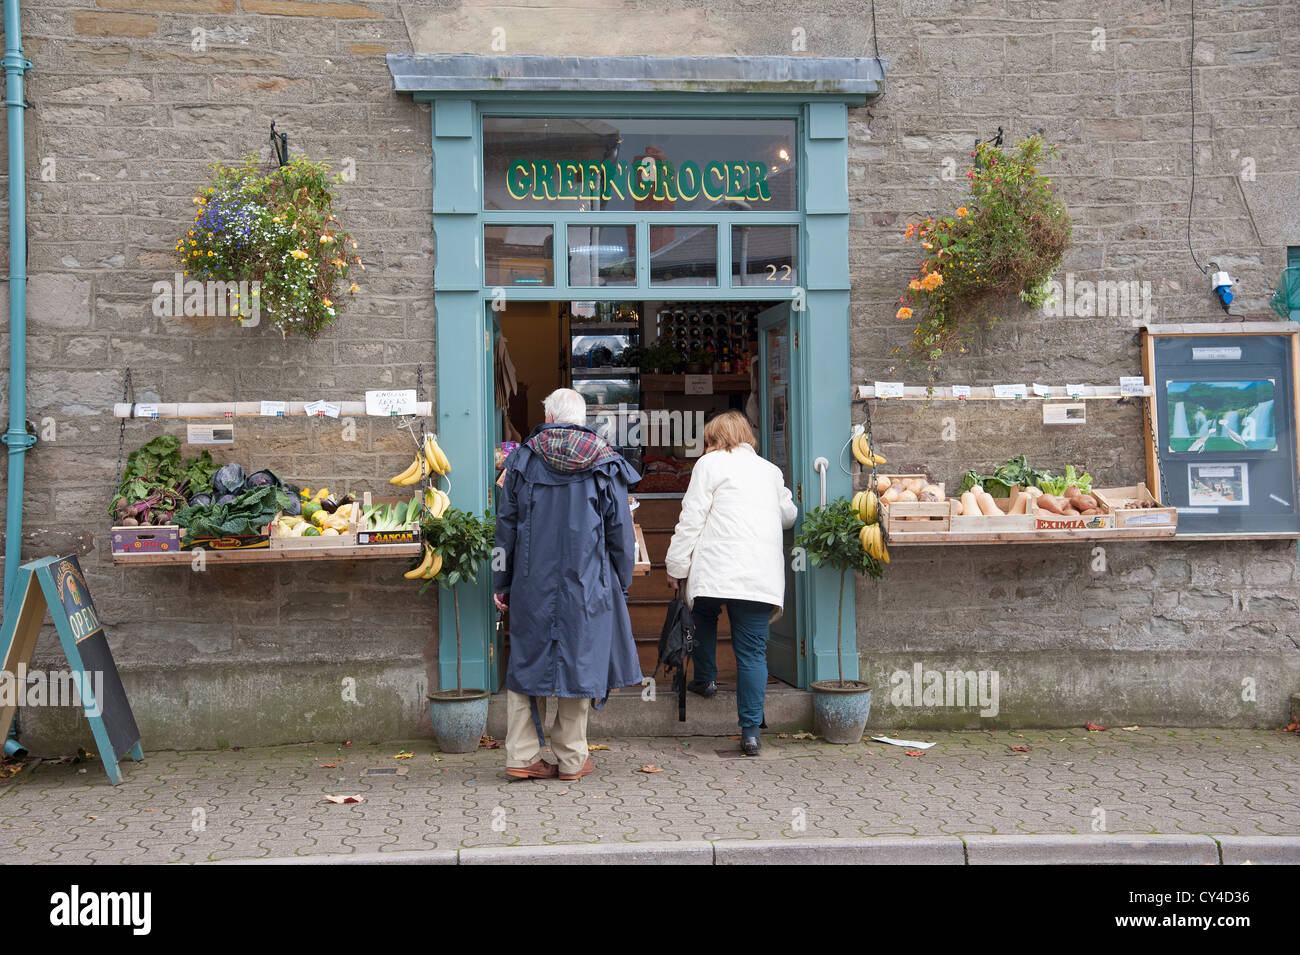 Greengrocers shop at Hay on Wye Powys Wales UK - Stock Image